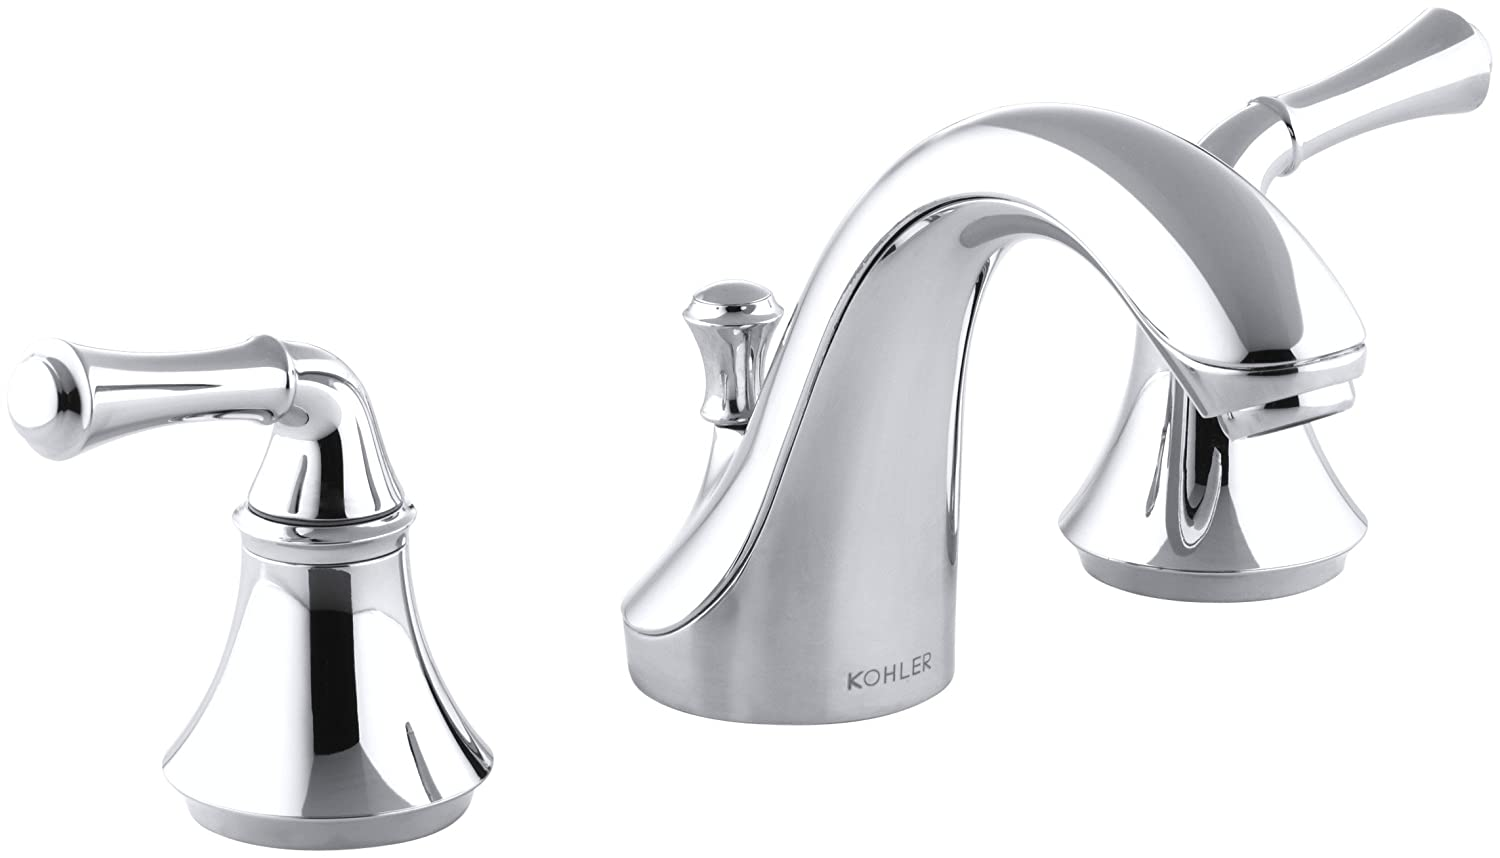 KOHLER K 10272 4A CP Forte Widespread Lavatory Faucet with Traditional  Lever Handles  Polished Chrome   Touch On Bathroom Sink Faucets   Amazon com. KOHLER K 10272 4A CP Forte Widespread Lavatory Faucet with